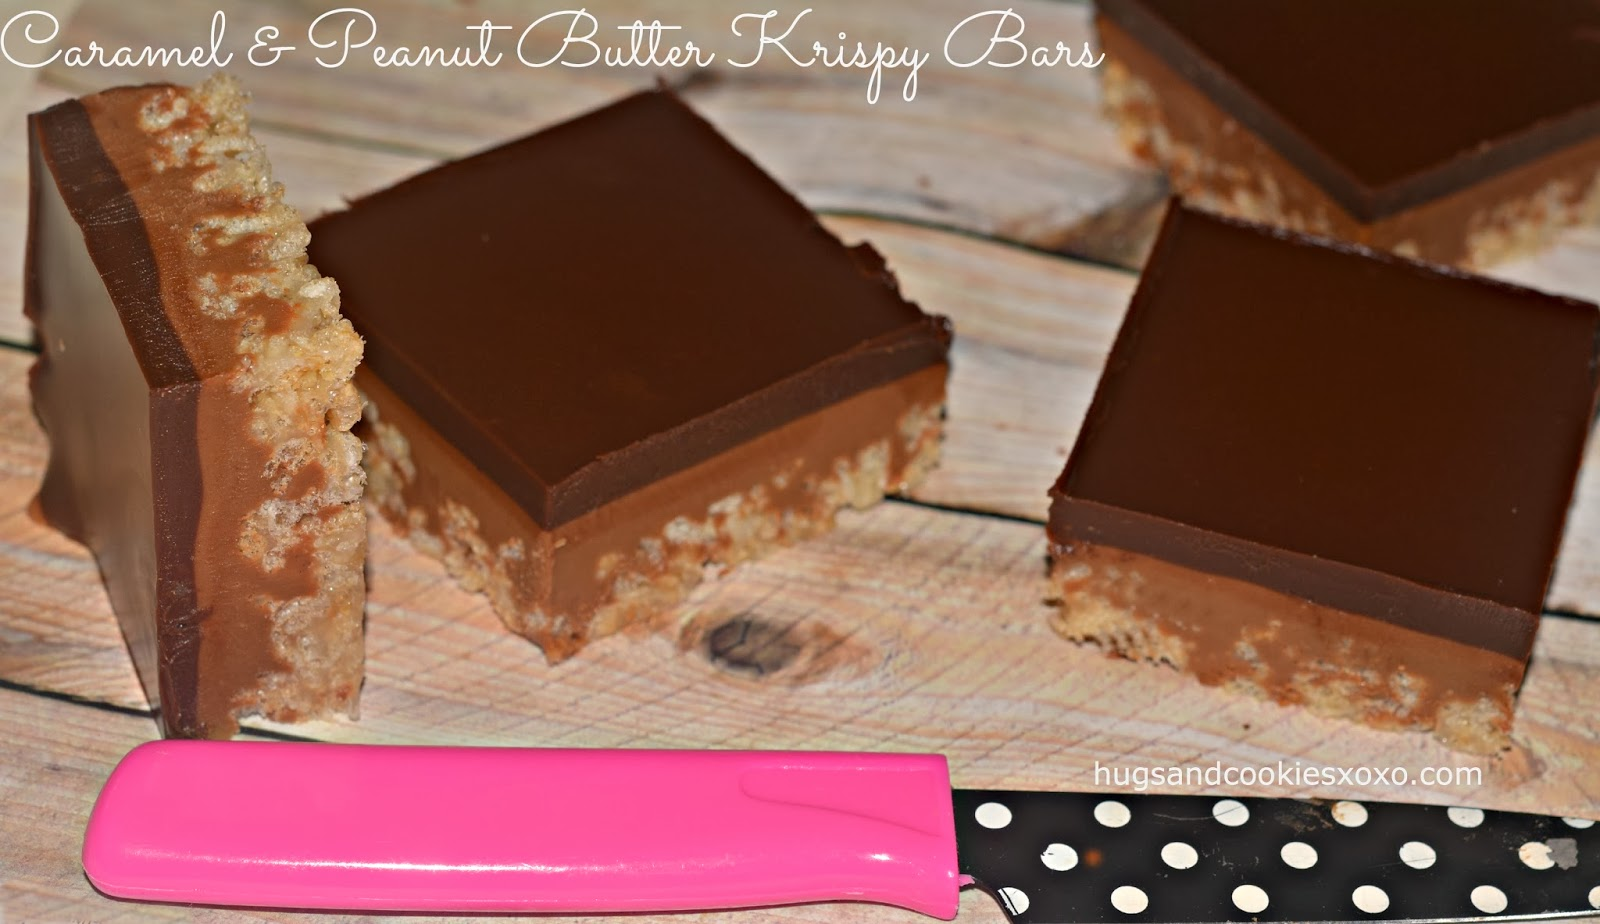 Caramel Peanut Butter Krispy Bars Topped With The Best Chocolate Kripiss Medan Karamel Rice A Thick Glaze I Am Sure You Can Imagine How Delicious These Are And Youd Be Right